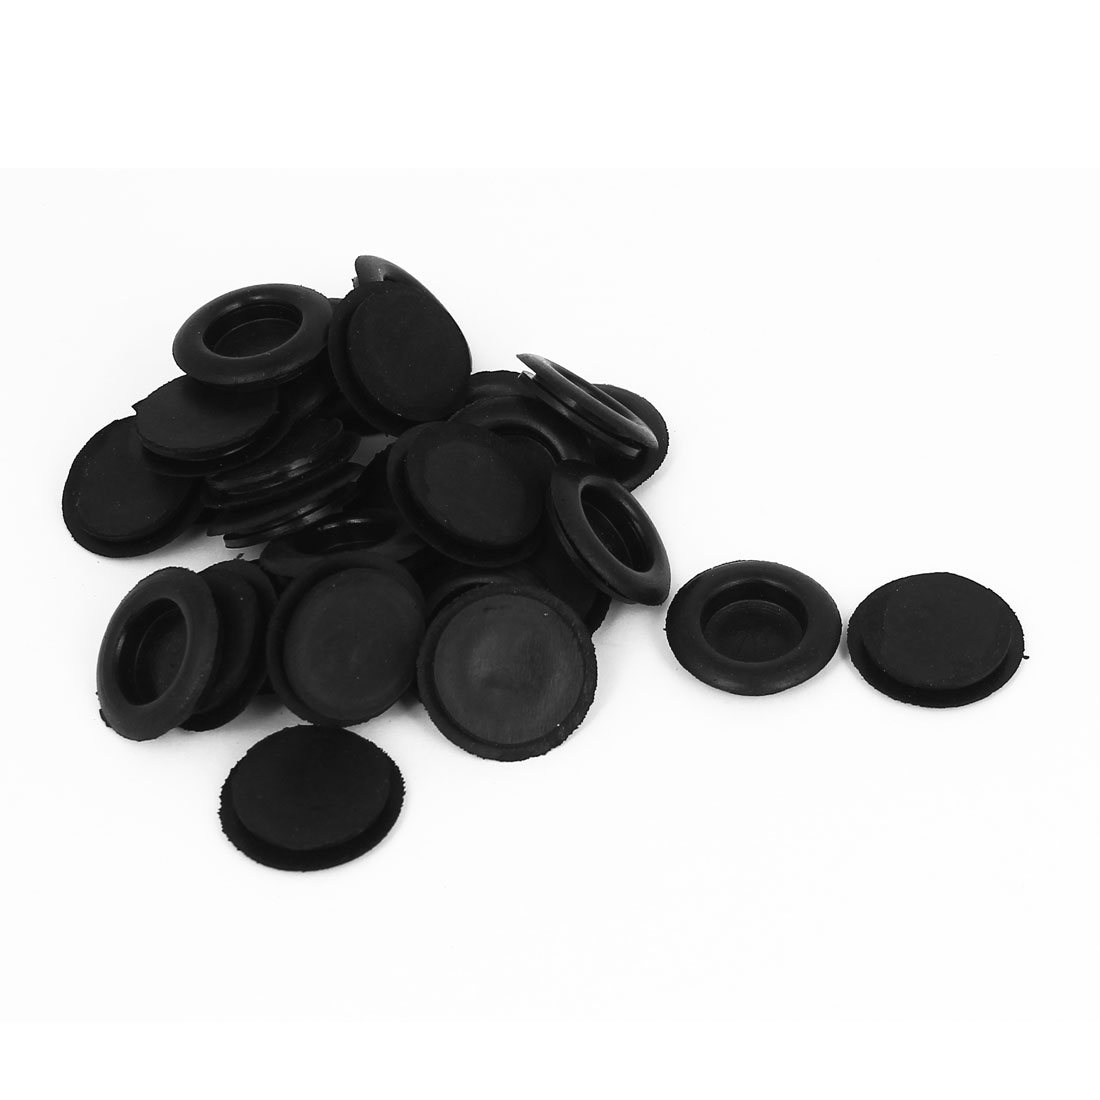 30pcs Black Rubber Closed Blind Blanking Hole Wire Cable Gasket Grommets 20mm